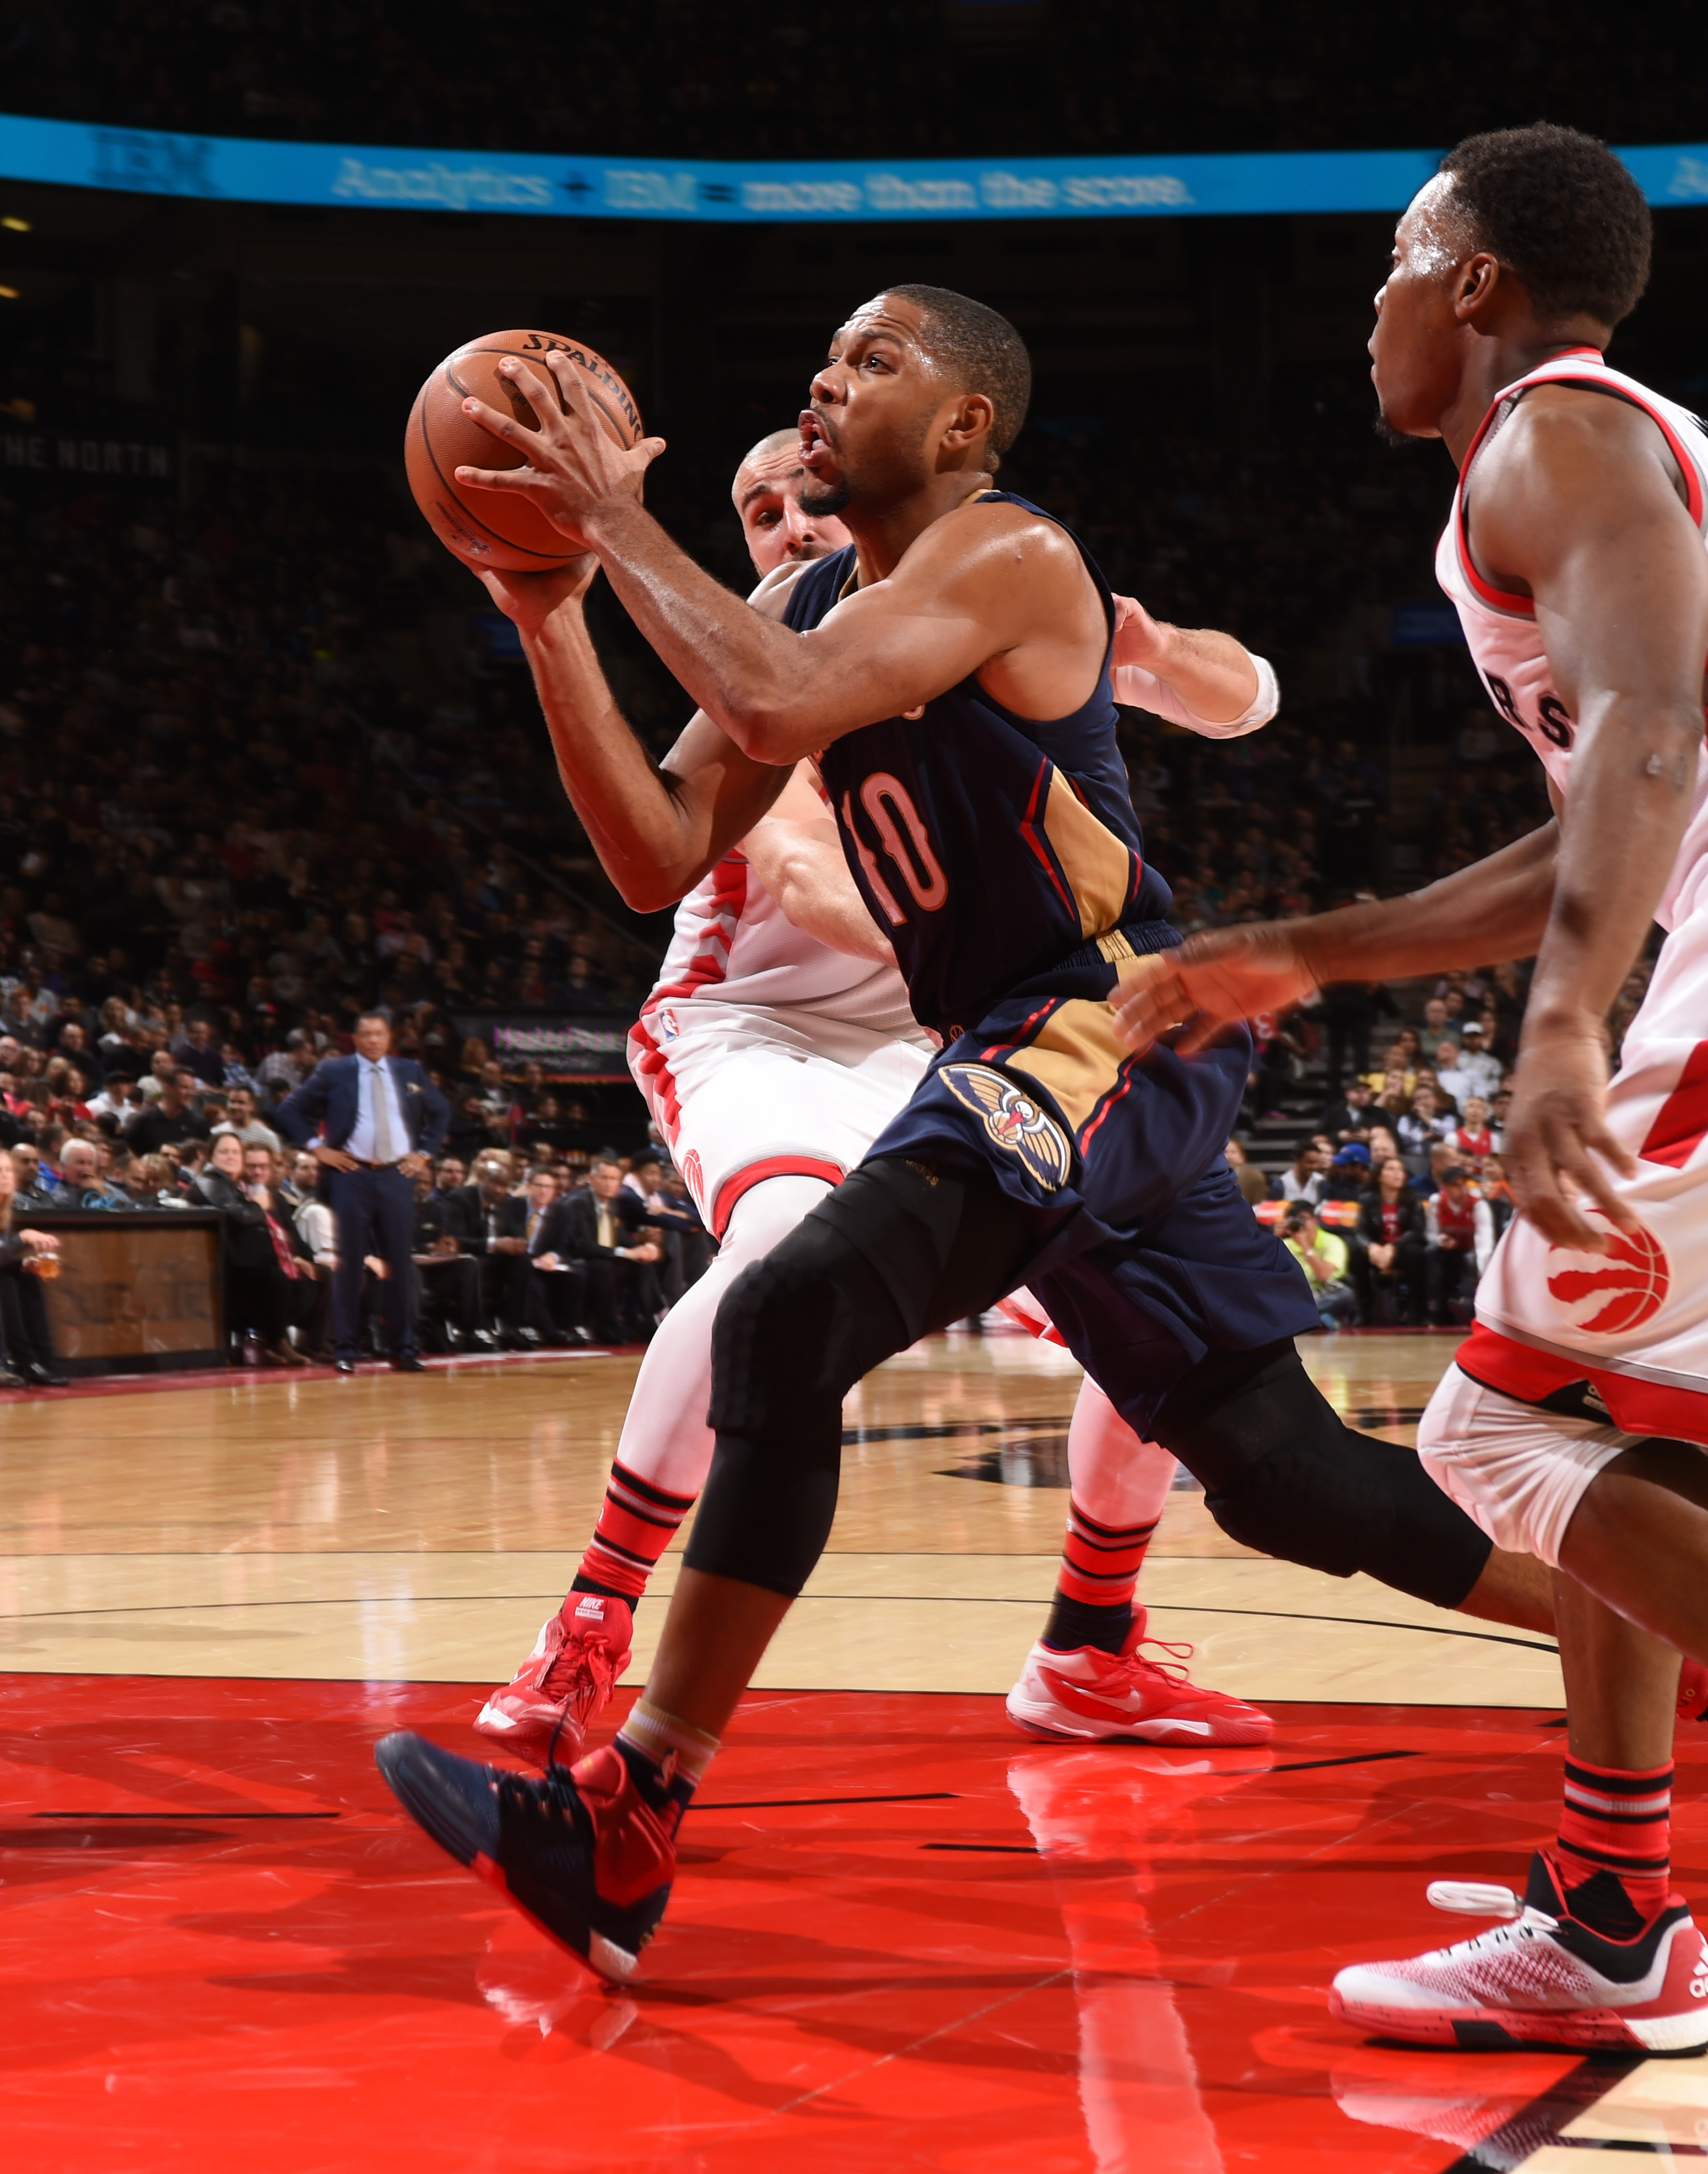 TORONTO, CANADA - NOVEMBER 13:  Eric Gordon #10 of the New Orleans Pelicans drives to the basket against the Toronto Raptors on November 13, 2015 at the Air Canada Centre in Toronto, Ontario, Canada.  (Photo by Ron Turenne/NBAE via Getty Images)